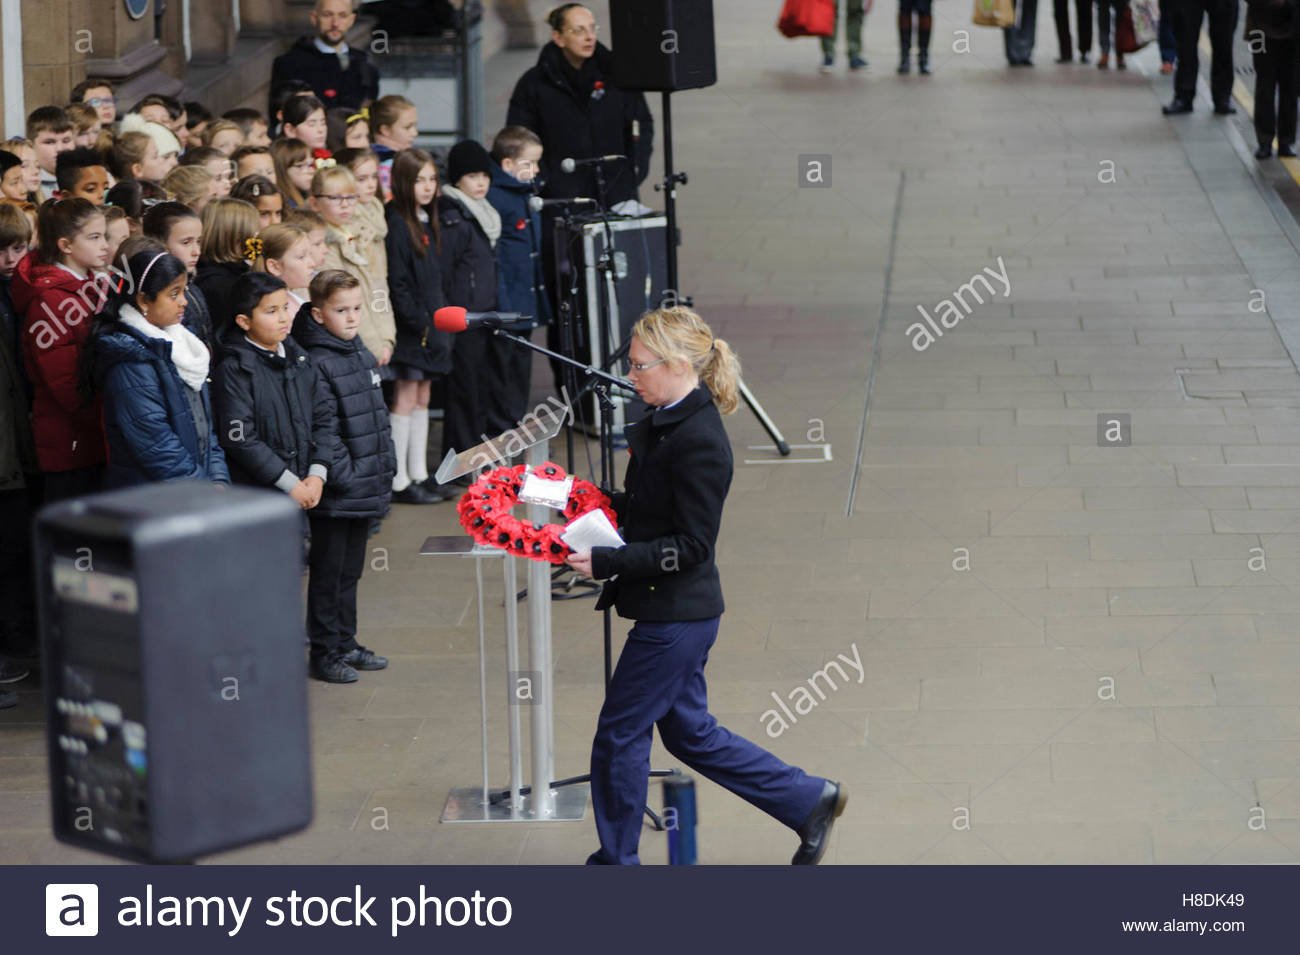 Edinburgh, UK. 11th November, 2016. A member of Scotrail staff lays a wreath during the service.  An Armistice Day - Stock Image